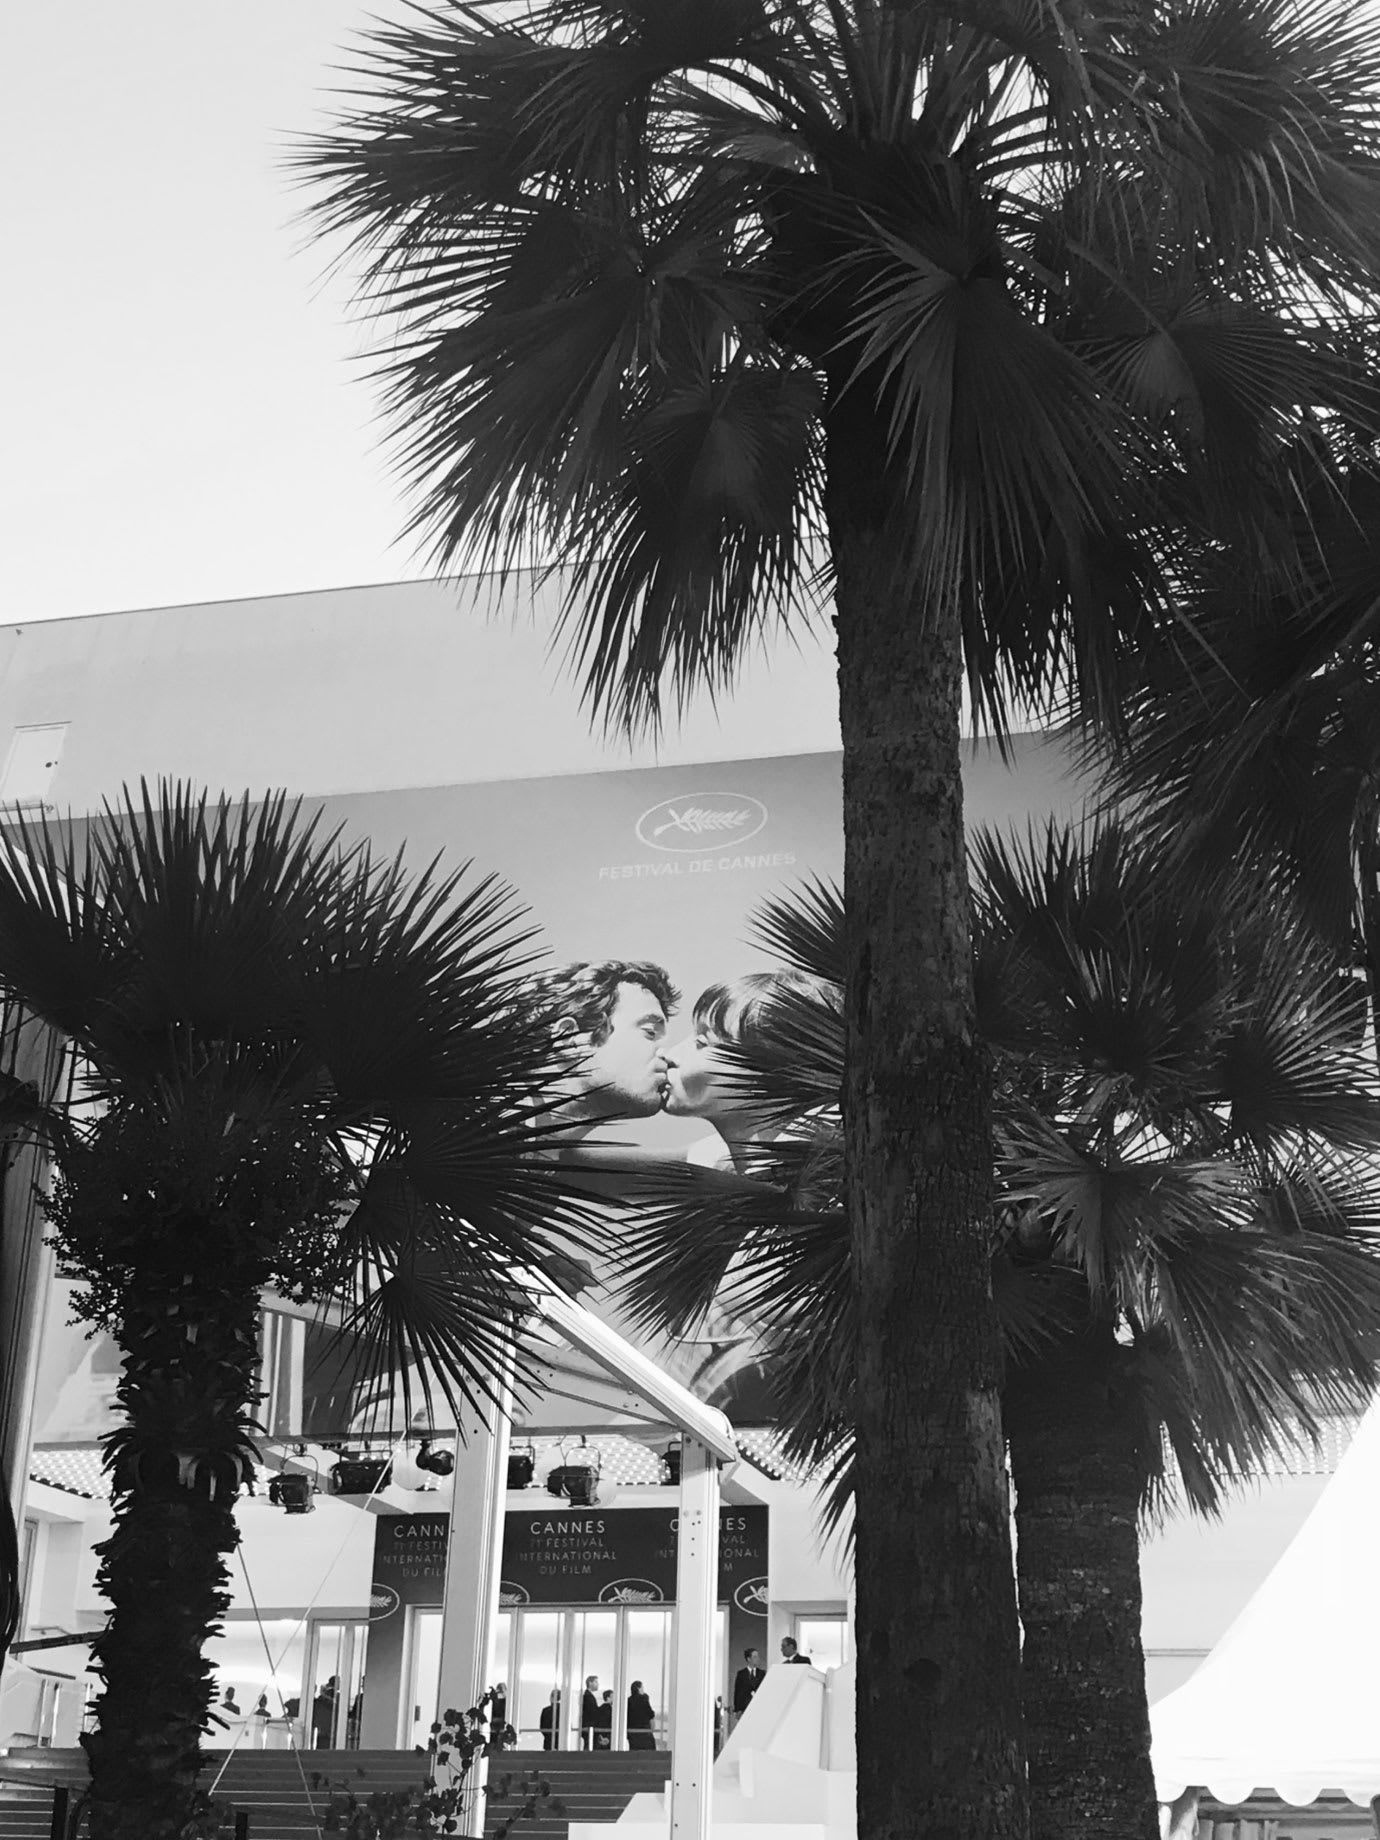 Red carpet, palm trees and a large poster with Cannes Film Festival written on it.